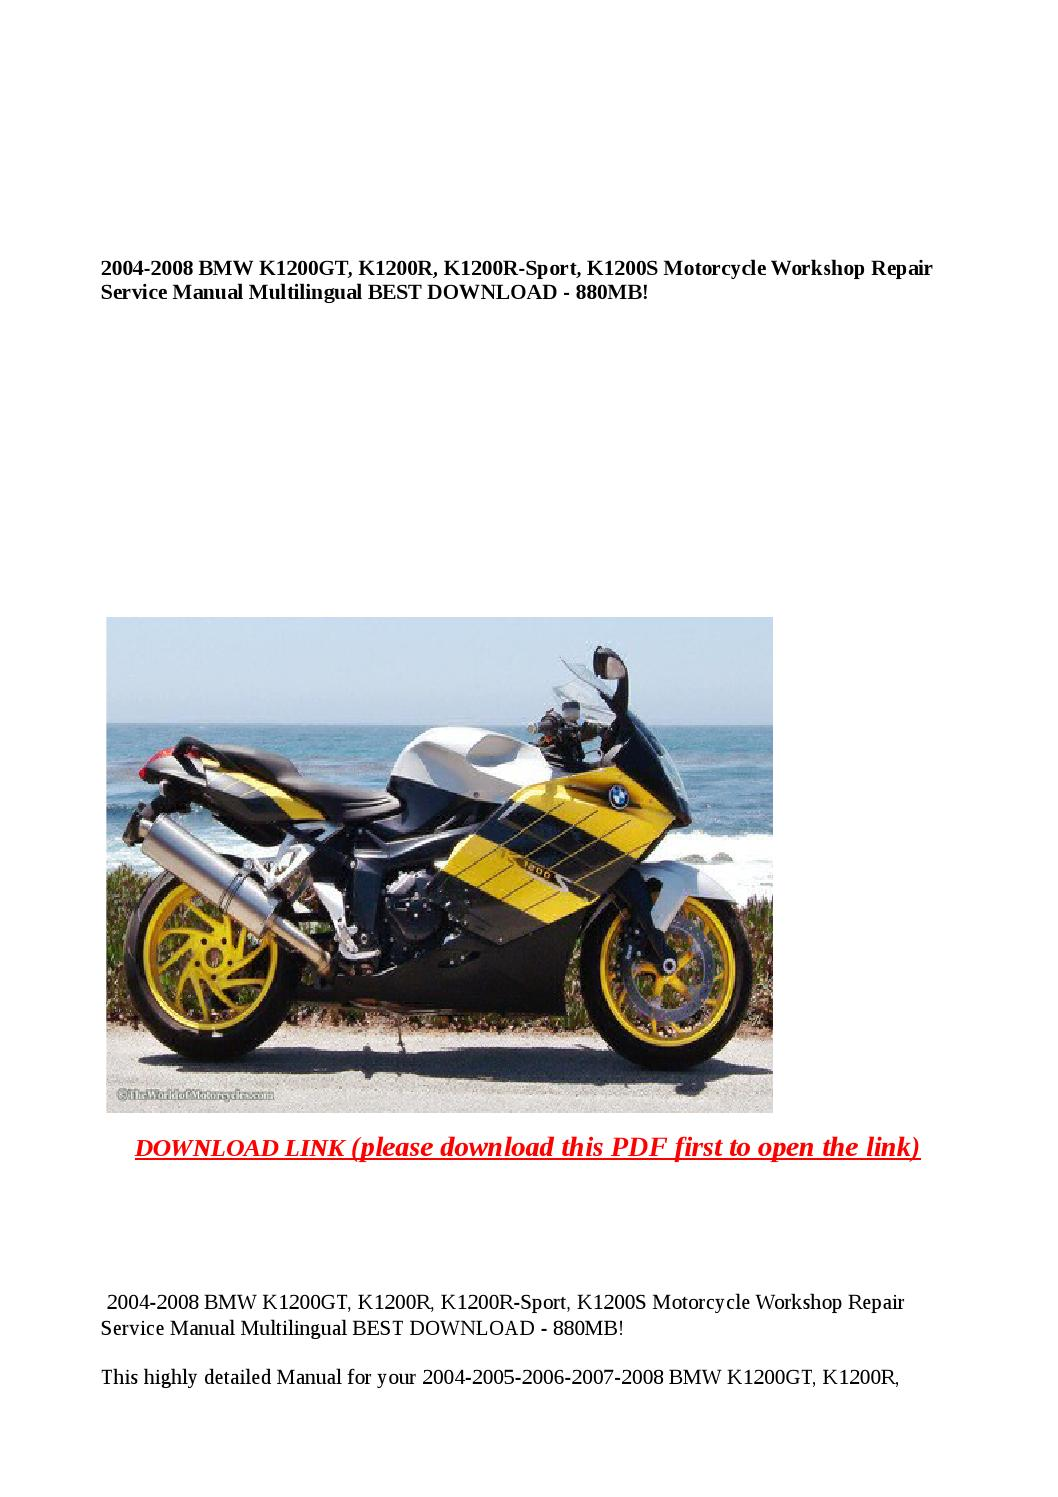 Ultimate Riding Machine data/dealership details. Gumtree Classified Ads  series Sale. 2002- written K1200LT 1998- written specifically  do-it-yourself ...